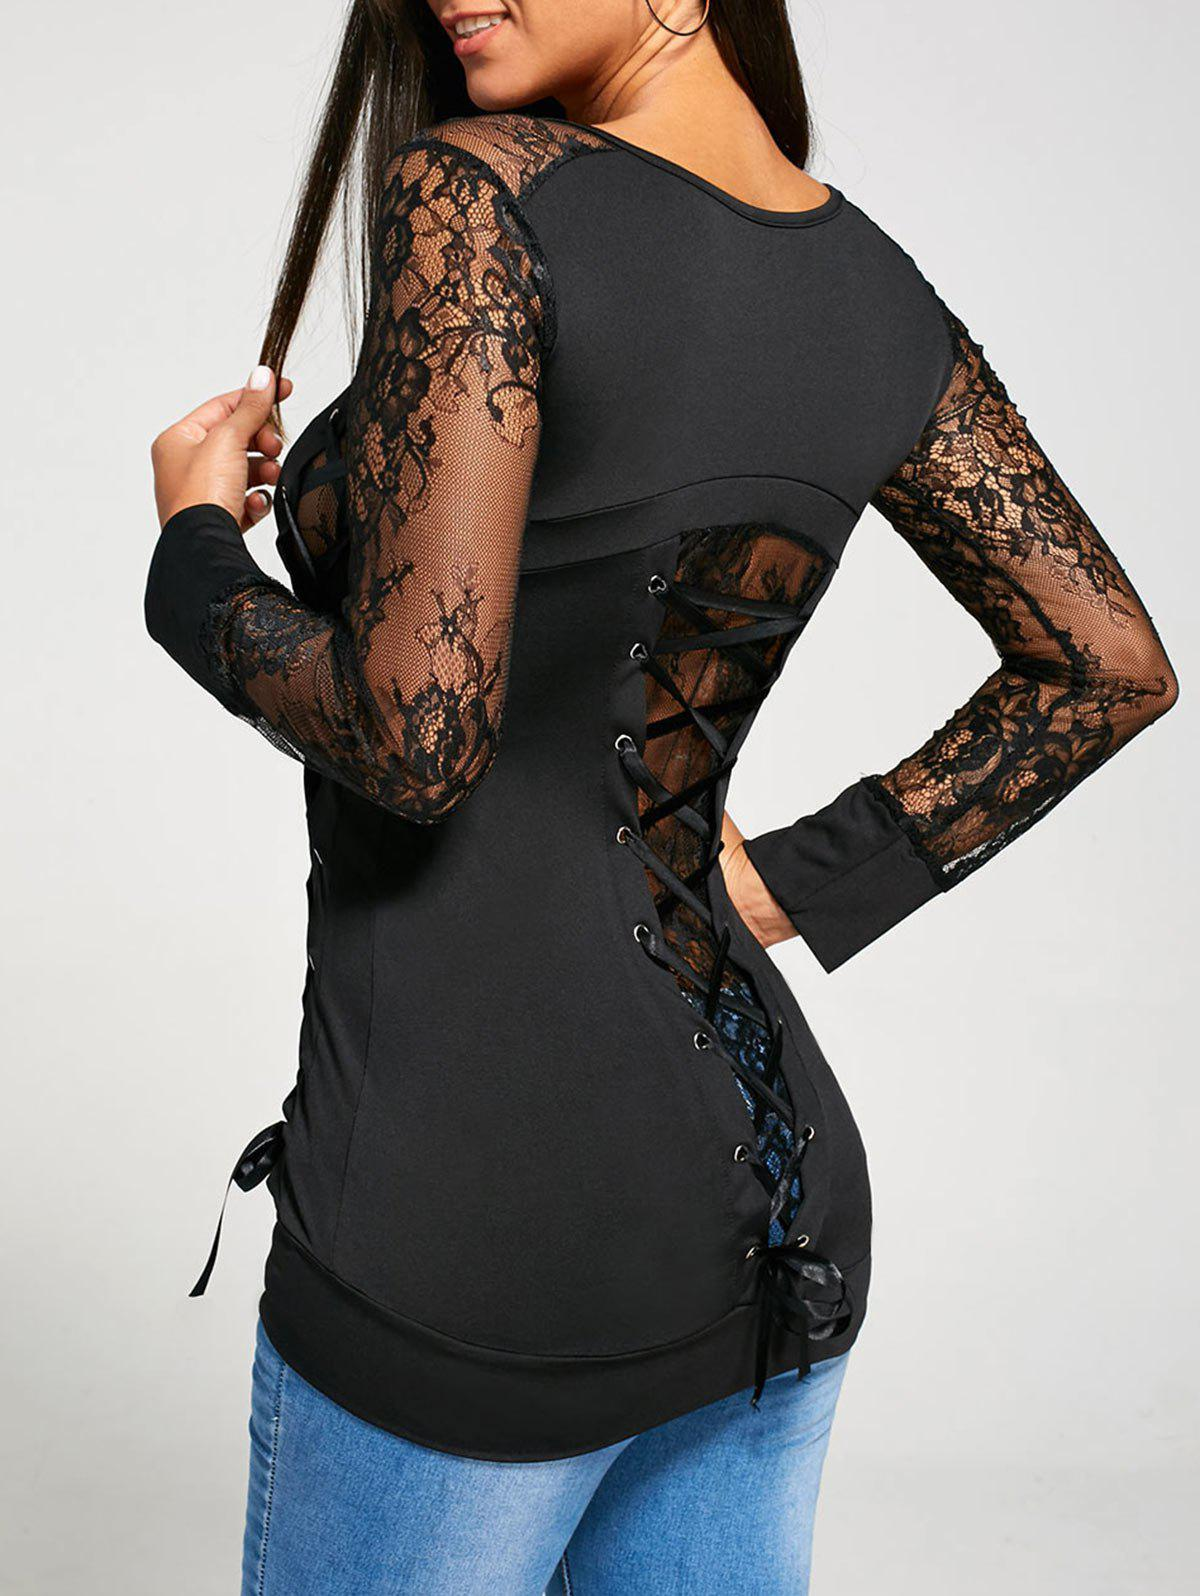 Long Raglan Lace Sleeve Lace Up T-shirtWOMEN<br><br>Size: XL; Color: BLACK; Material: Polyester,Spandex; Shirt Length: Regular; Sleeve Length: Full; Collar: U Neck; Style: Fashion; Sleeve Type: Raglan Sleeve; Embellishment: Criss-Cross,Lace; Pattern Type: Solid Color; Season: Fall,Spring; Elasticity: Micro-elastic; Weight: 0.3600kg; Package Contents: 1 x T-shirt;